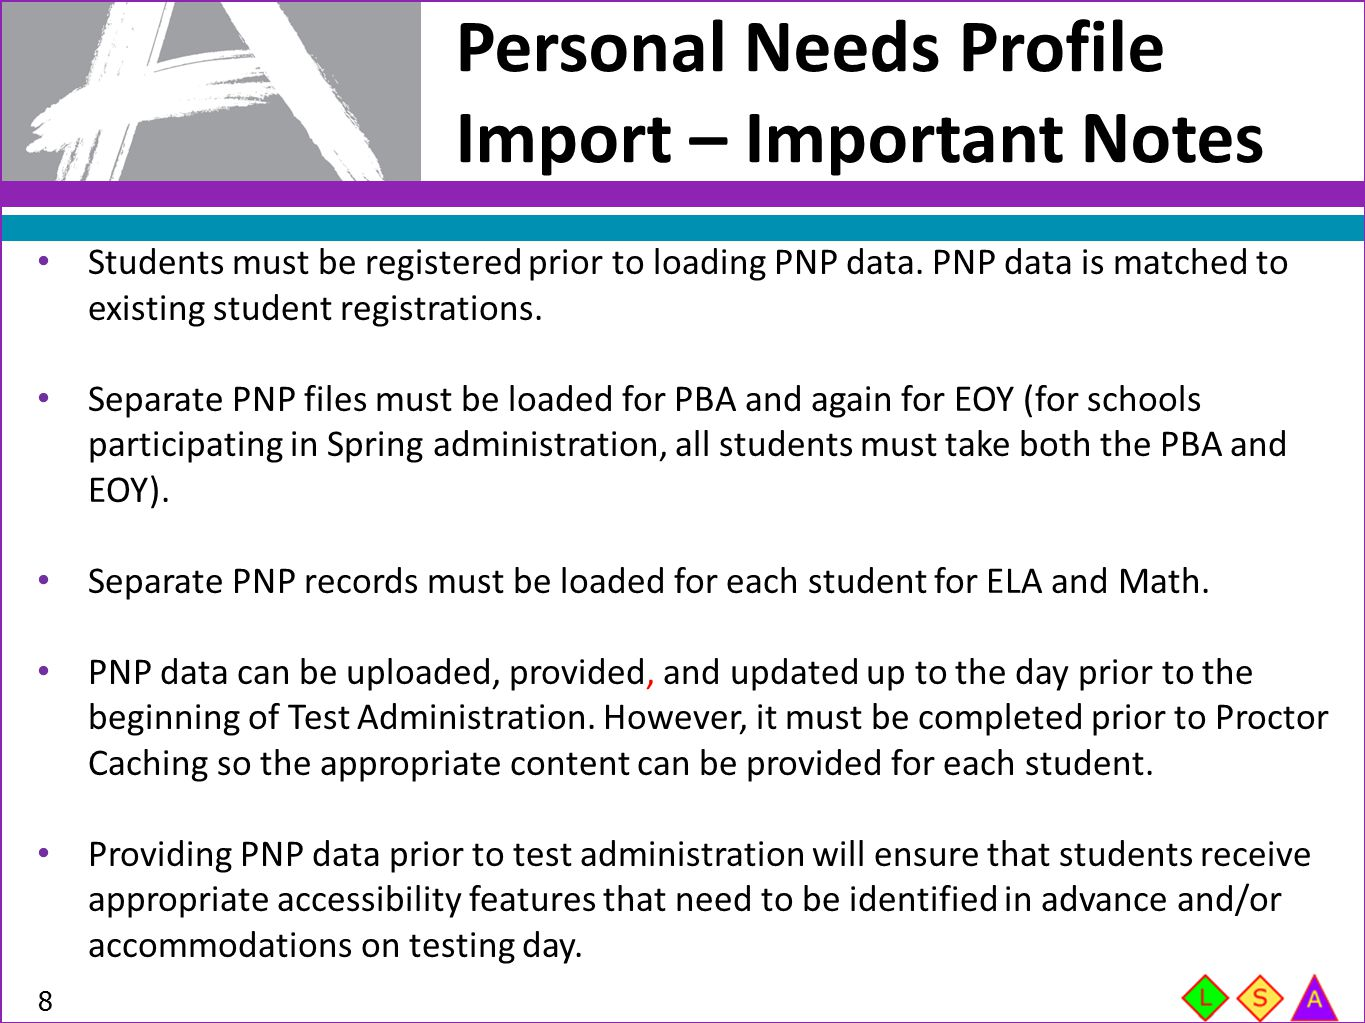 Personal Needs Profile Import – Important Notes